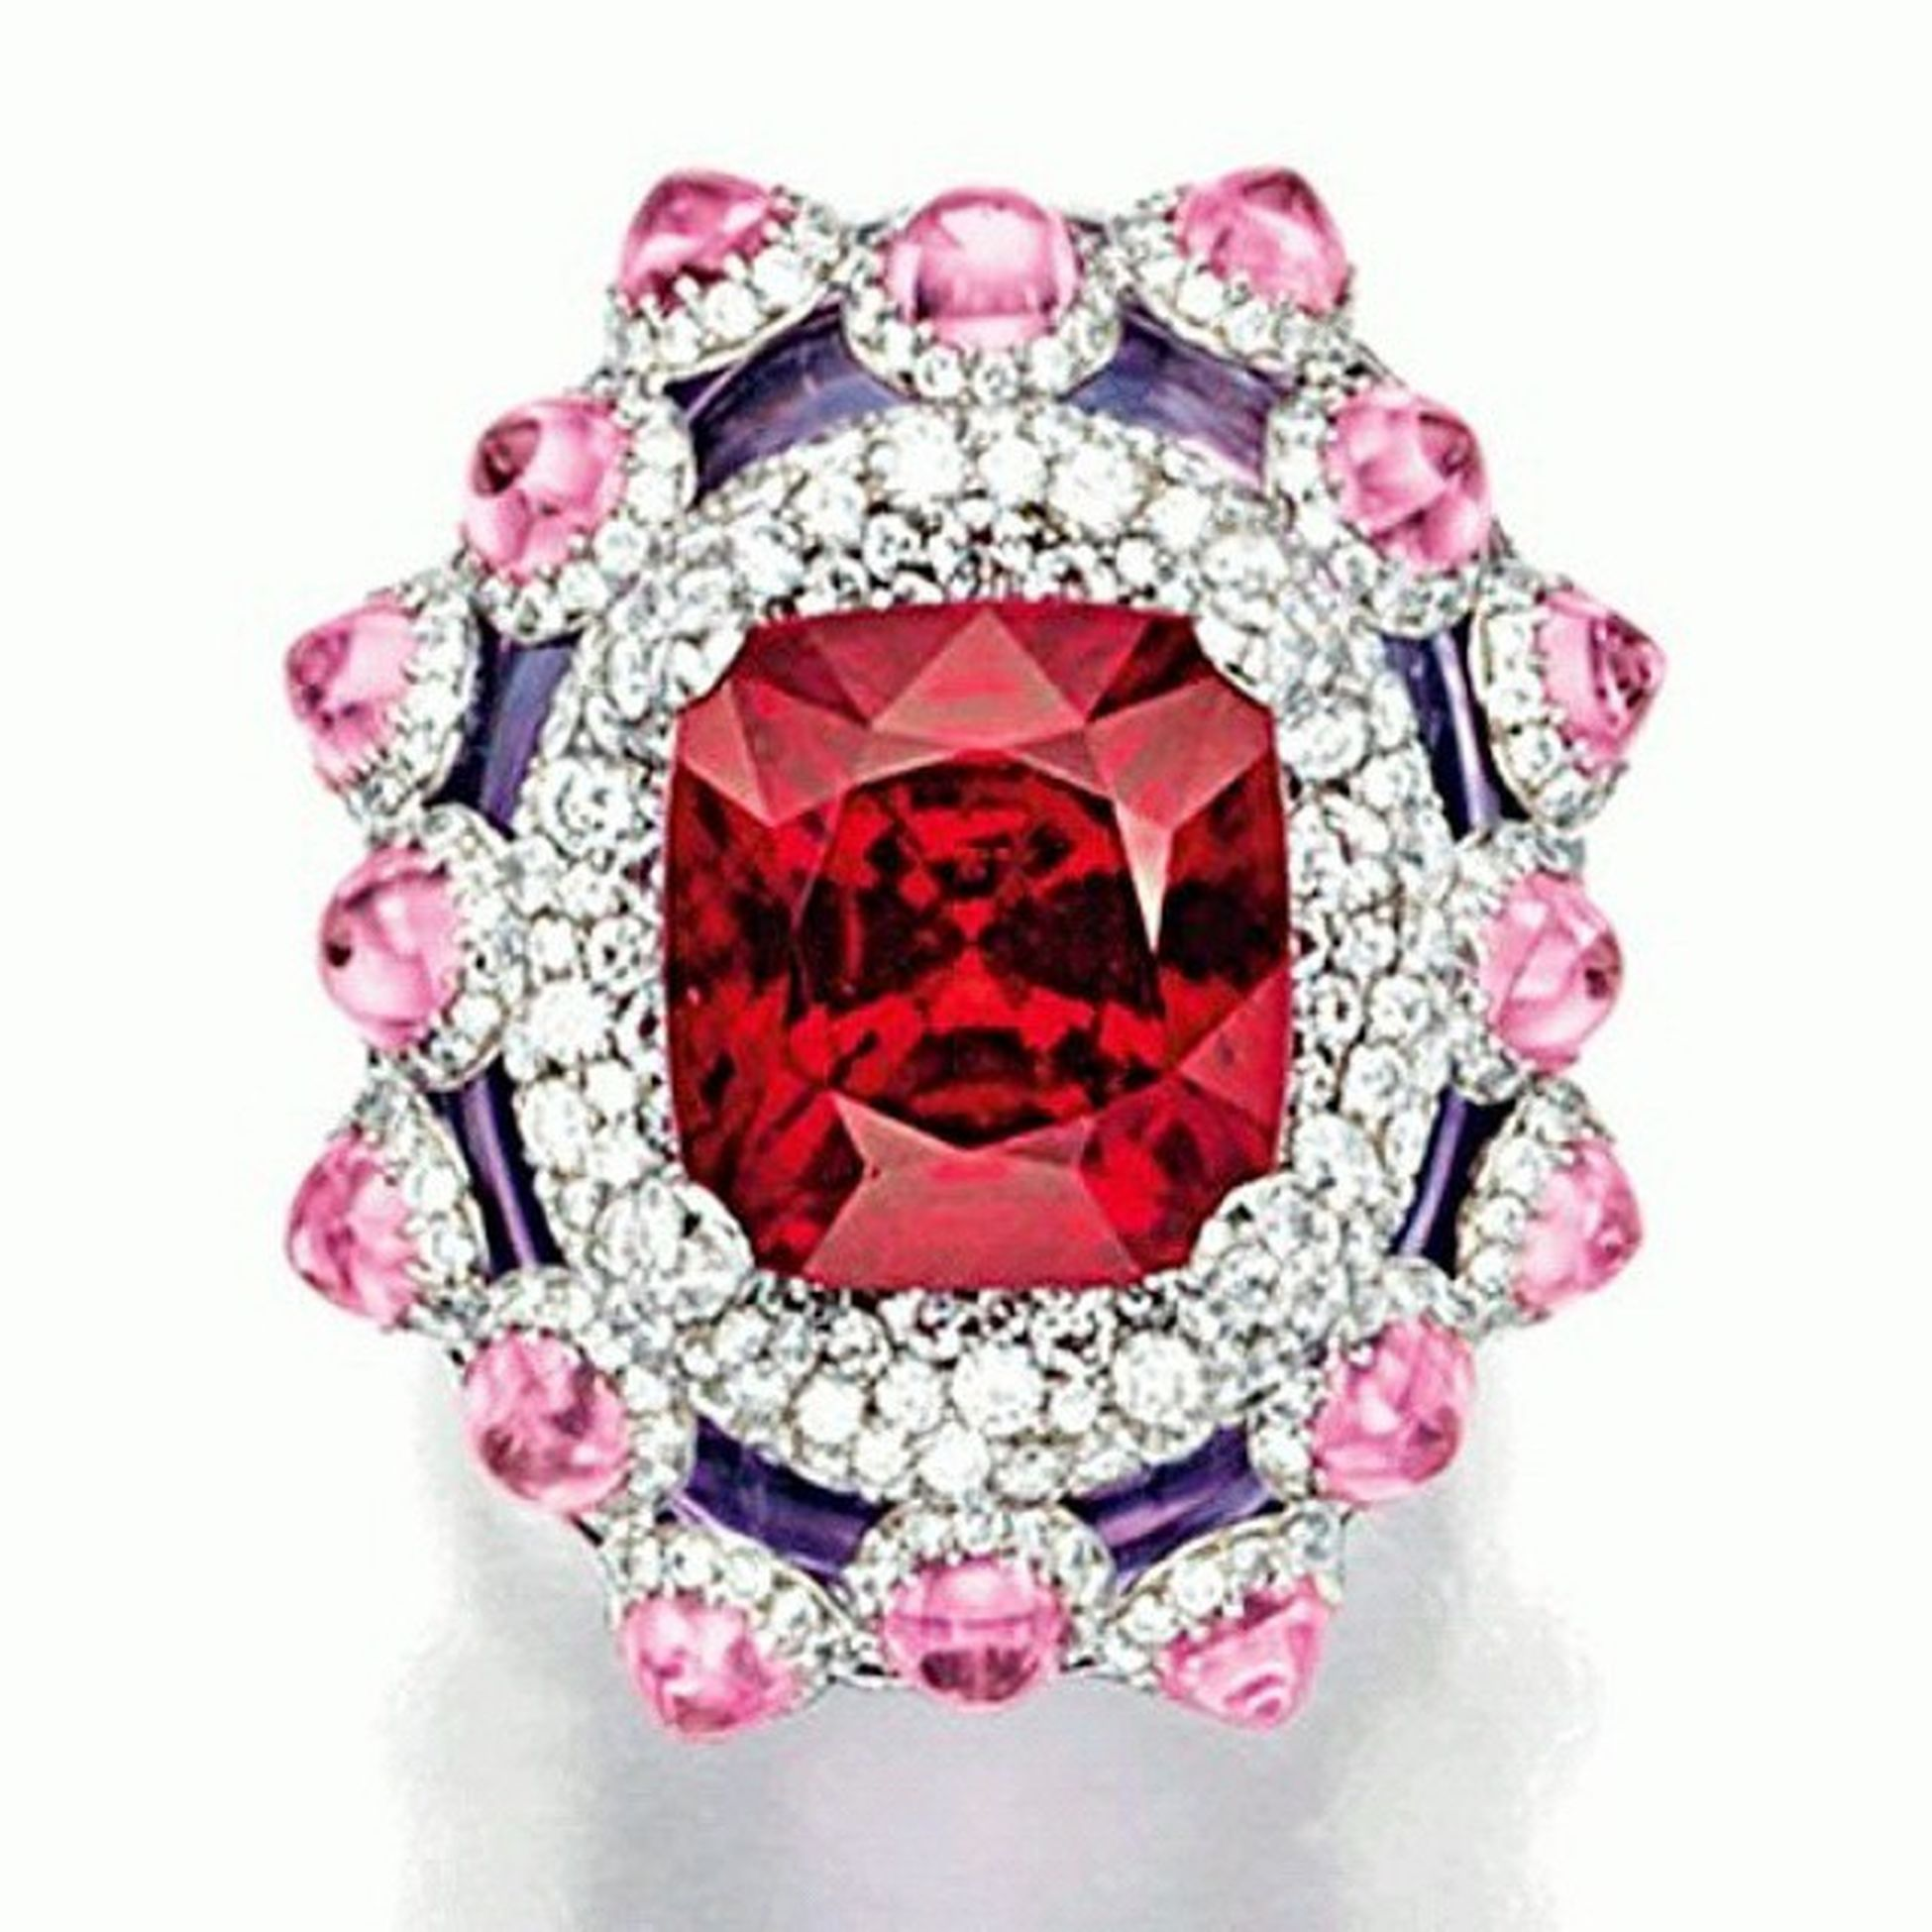 Renkli ruyalar!RED Spinel , Pink Sapphire , Amethyst AND Diamond Ring by WALLACE CHAN Loveit Jewelry Jewelleryblogger Jewellery Jewelrylover Jewelrydesign Joyas Fashion Instajewelry Blog Fashionista